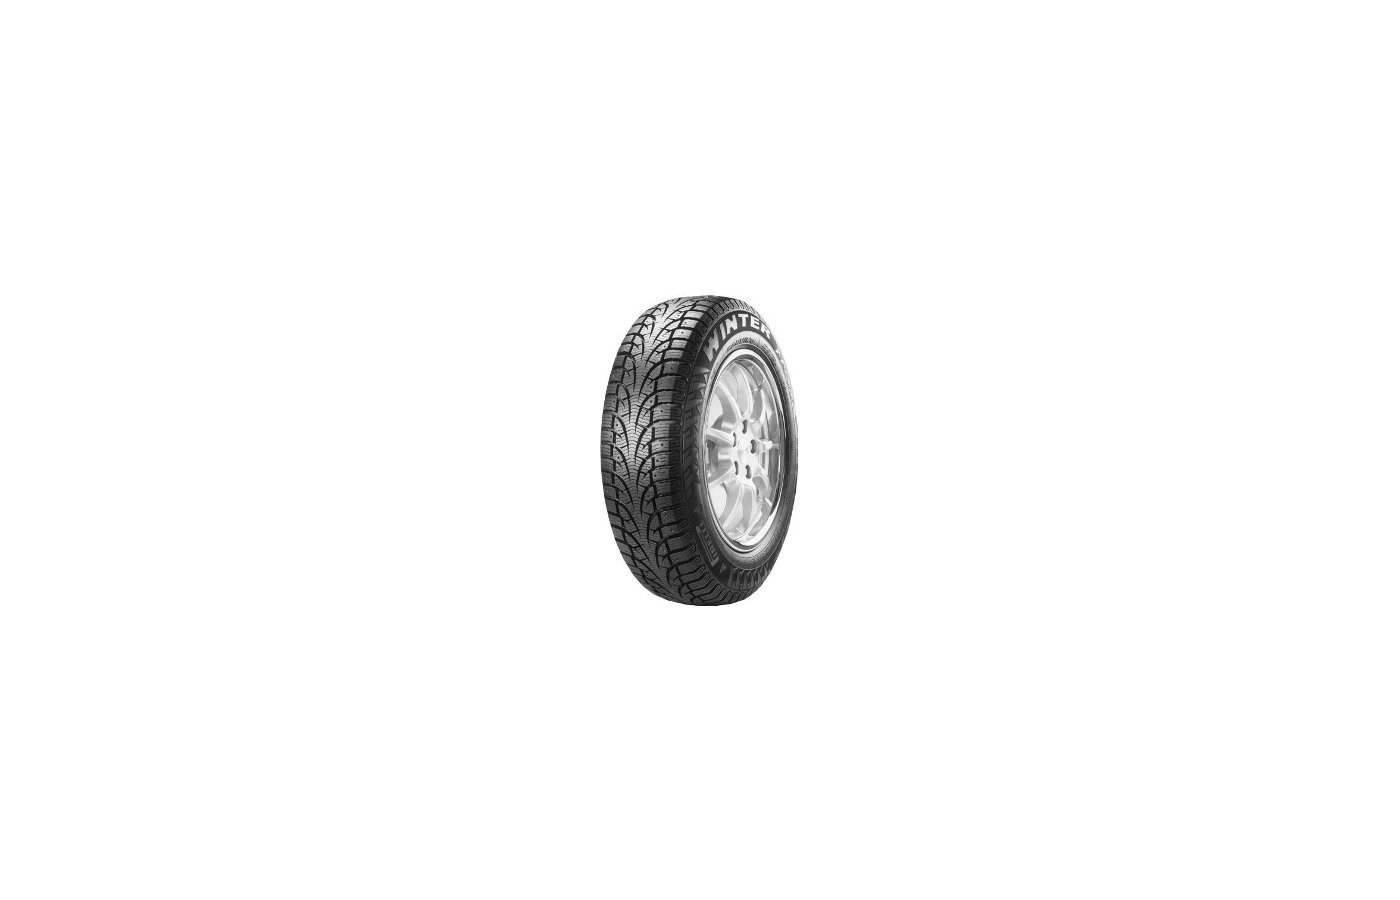 Шина Pirelli Winter Carving Edge 225/55 R17 TL 101T XL шип